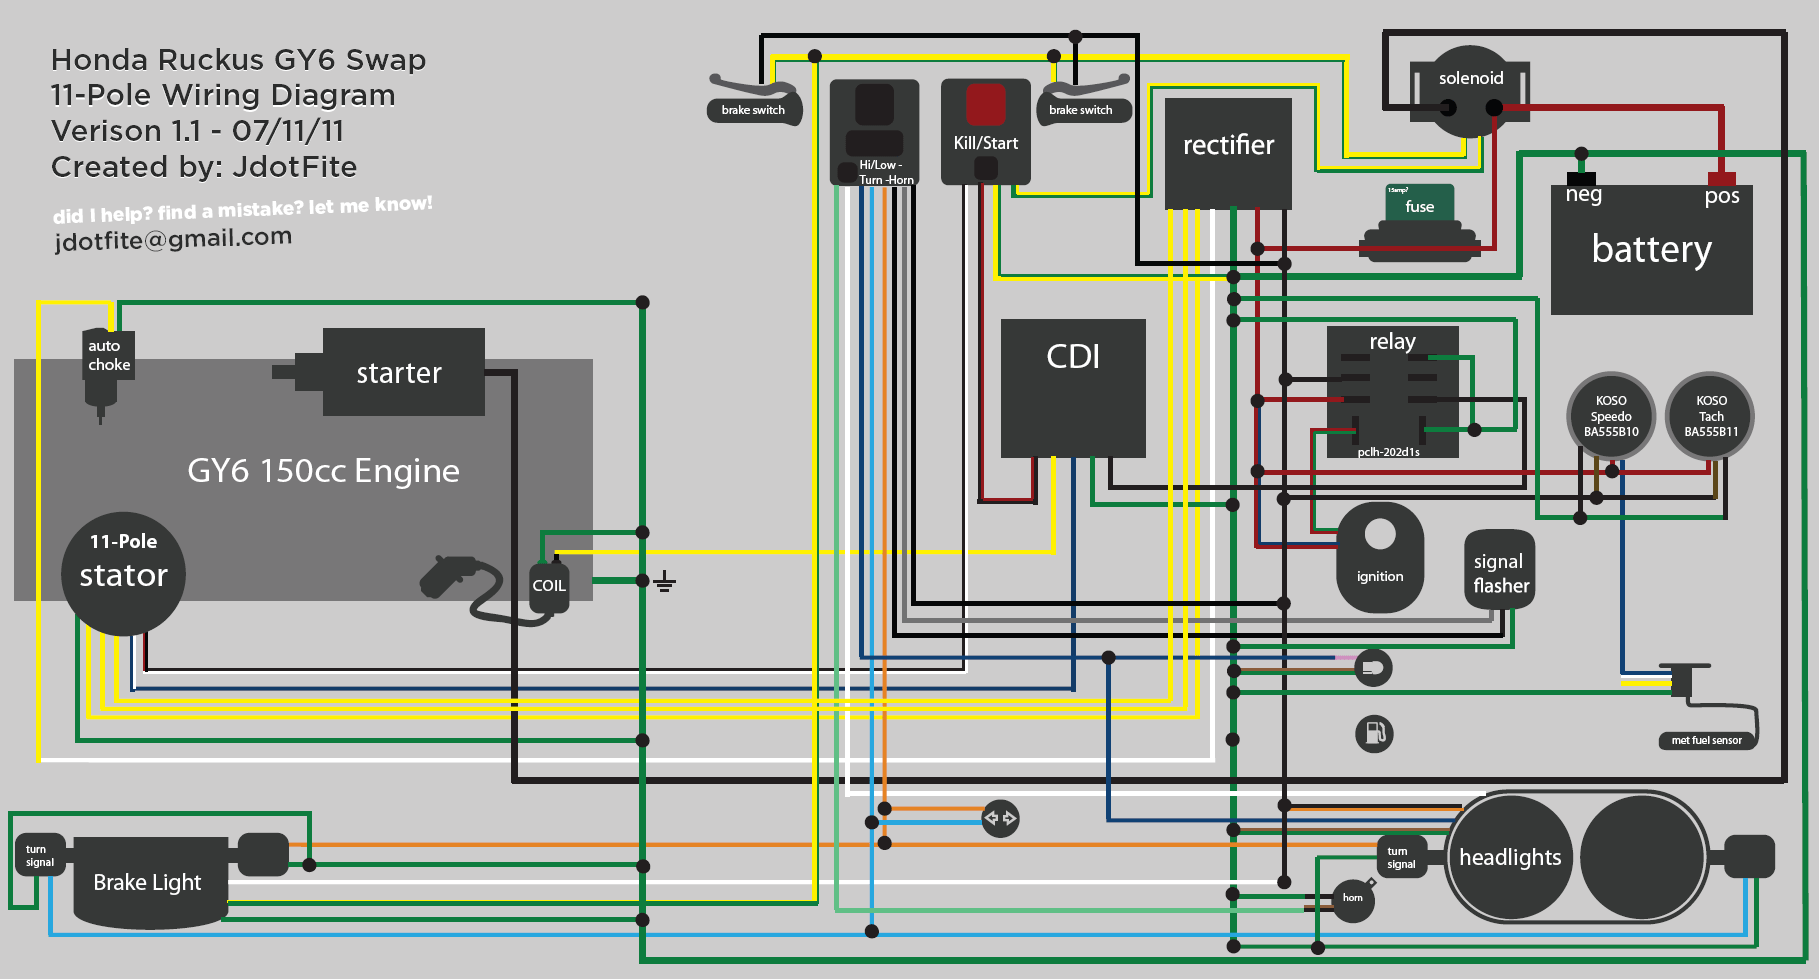 hight resolution of honda chf50 scooter wiring diagram wiring diagram toolbox 150cc gy6 wiring diagram within webtor me and